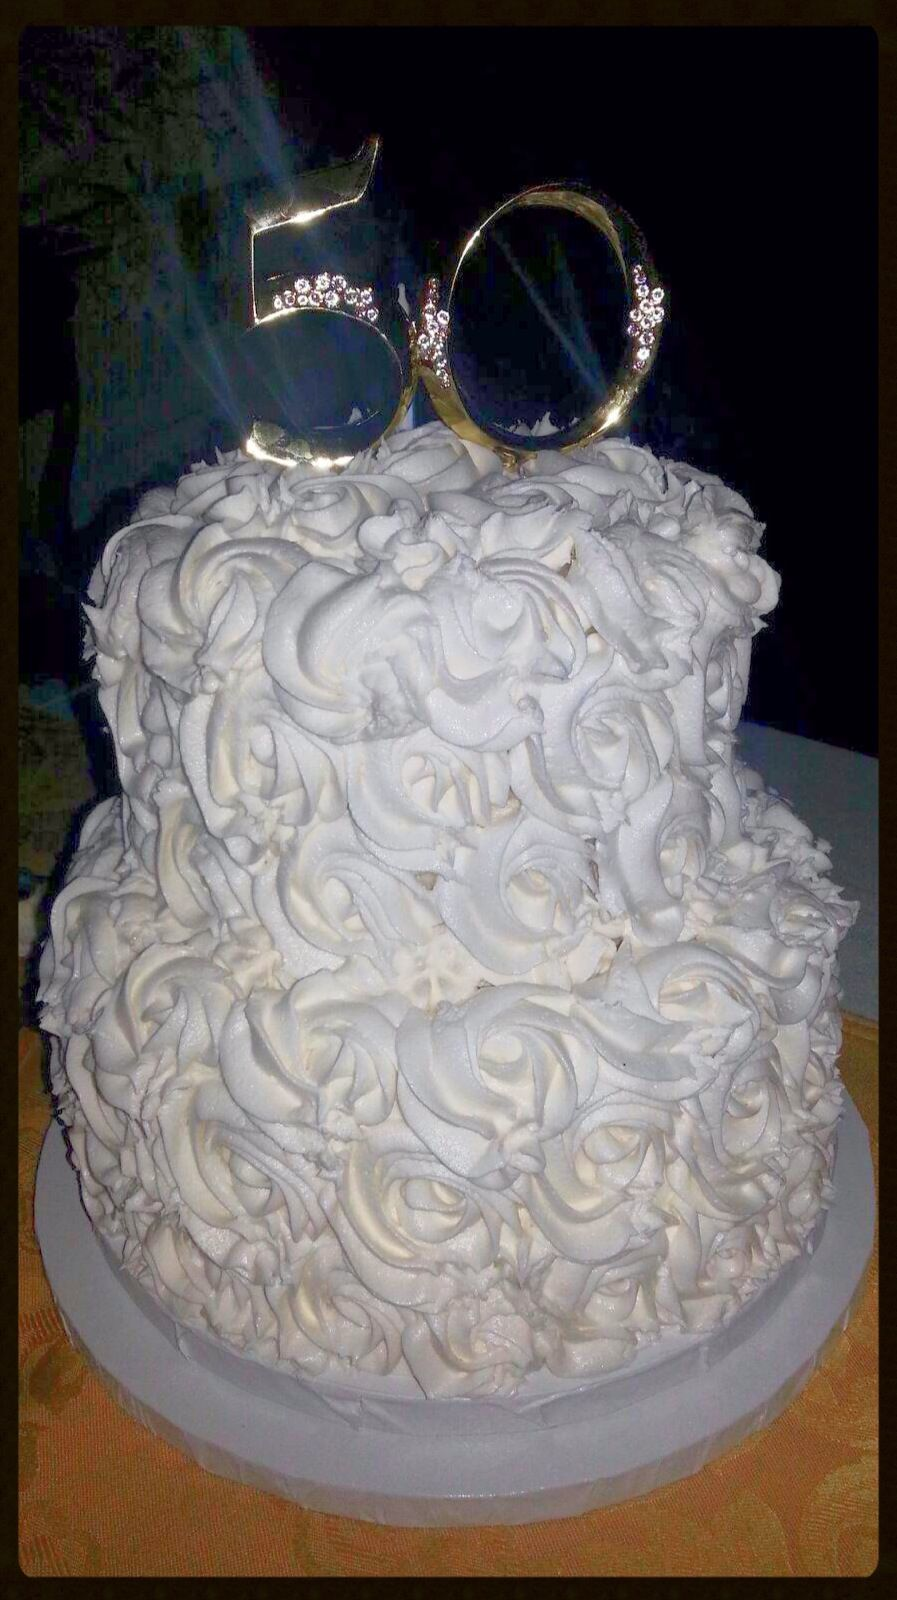 50th Wedding Anniversary Cake CAKE MASTERPIECES Pinterest